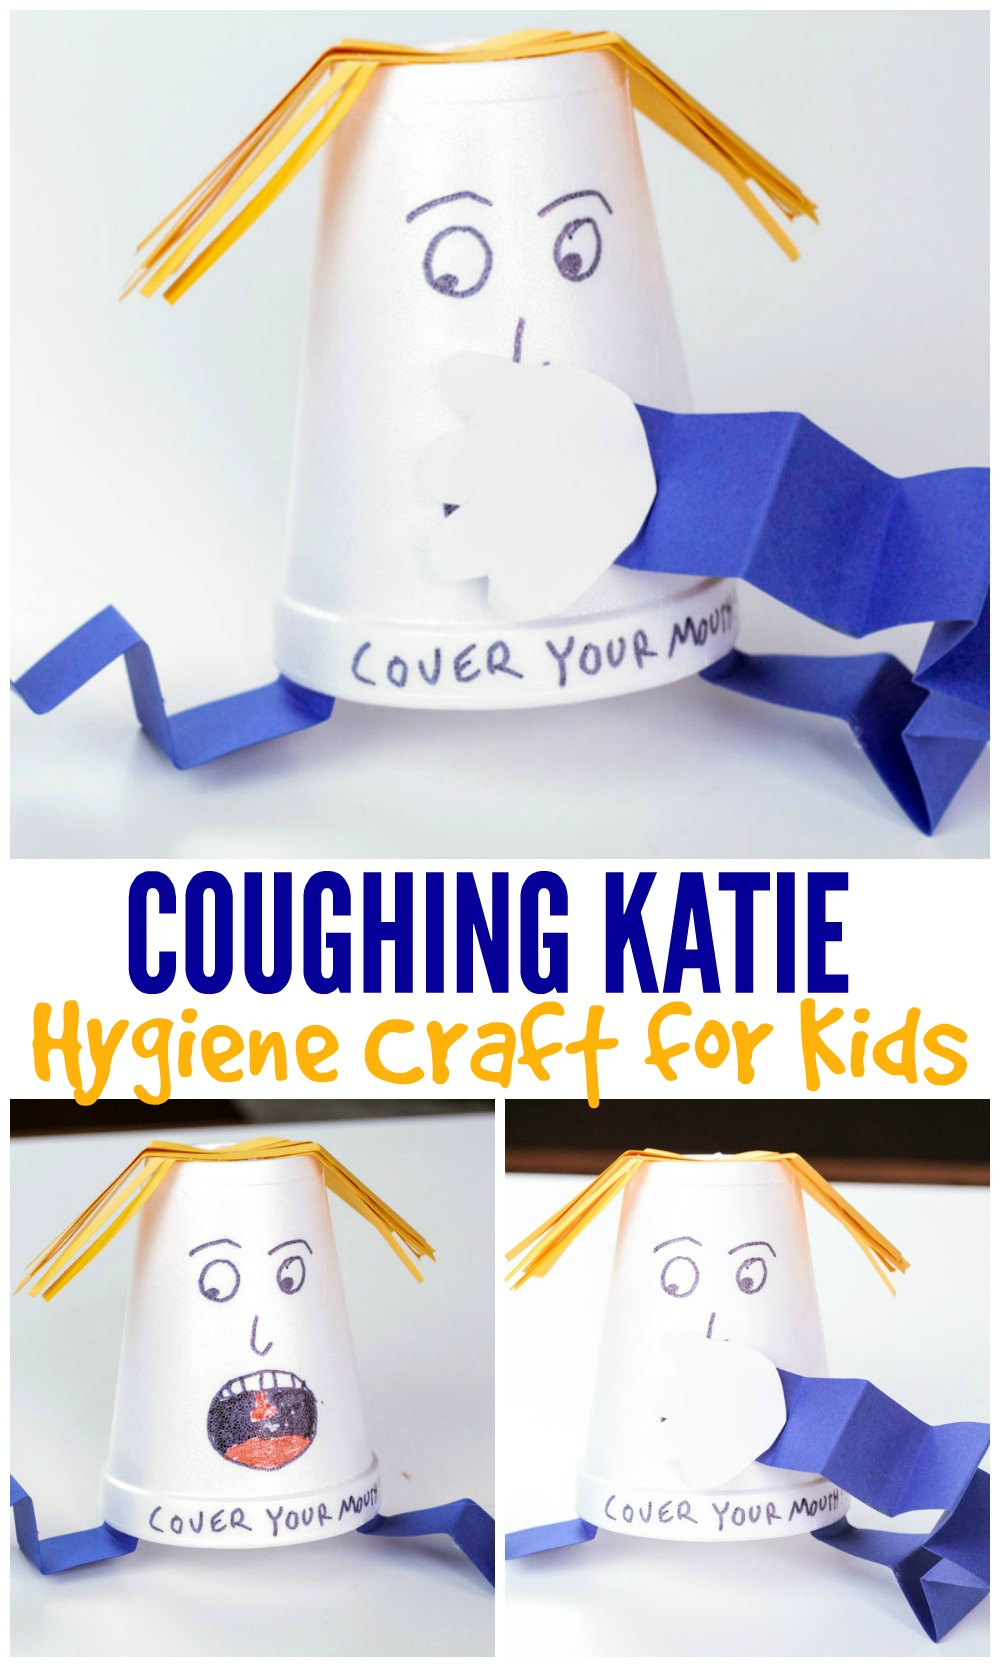 Teaching children Personal Hygiene and Healthy Habits lessons? Here is some Personal Hygiene and Healthy Habits Craft and lessons to help children live more healthily.